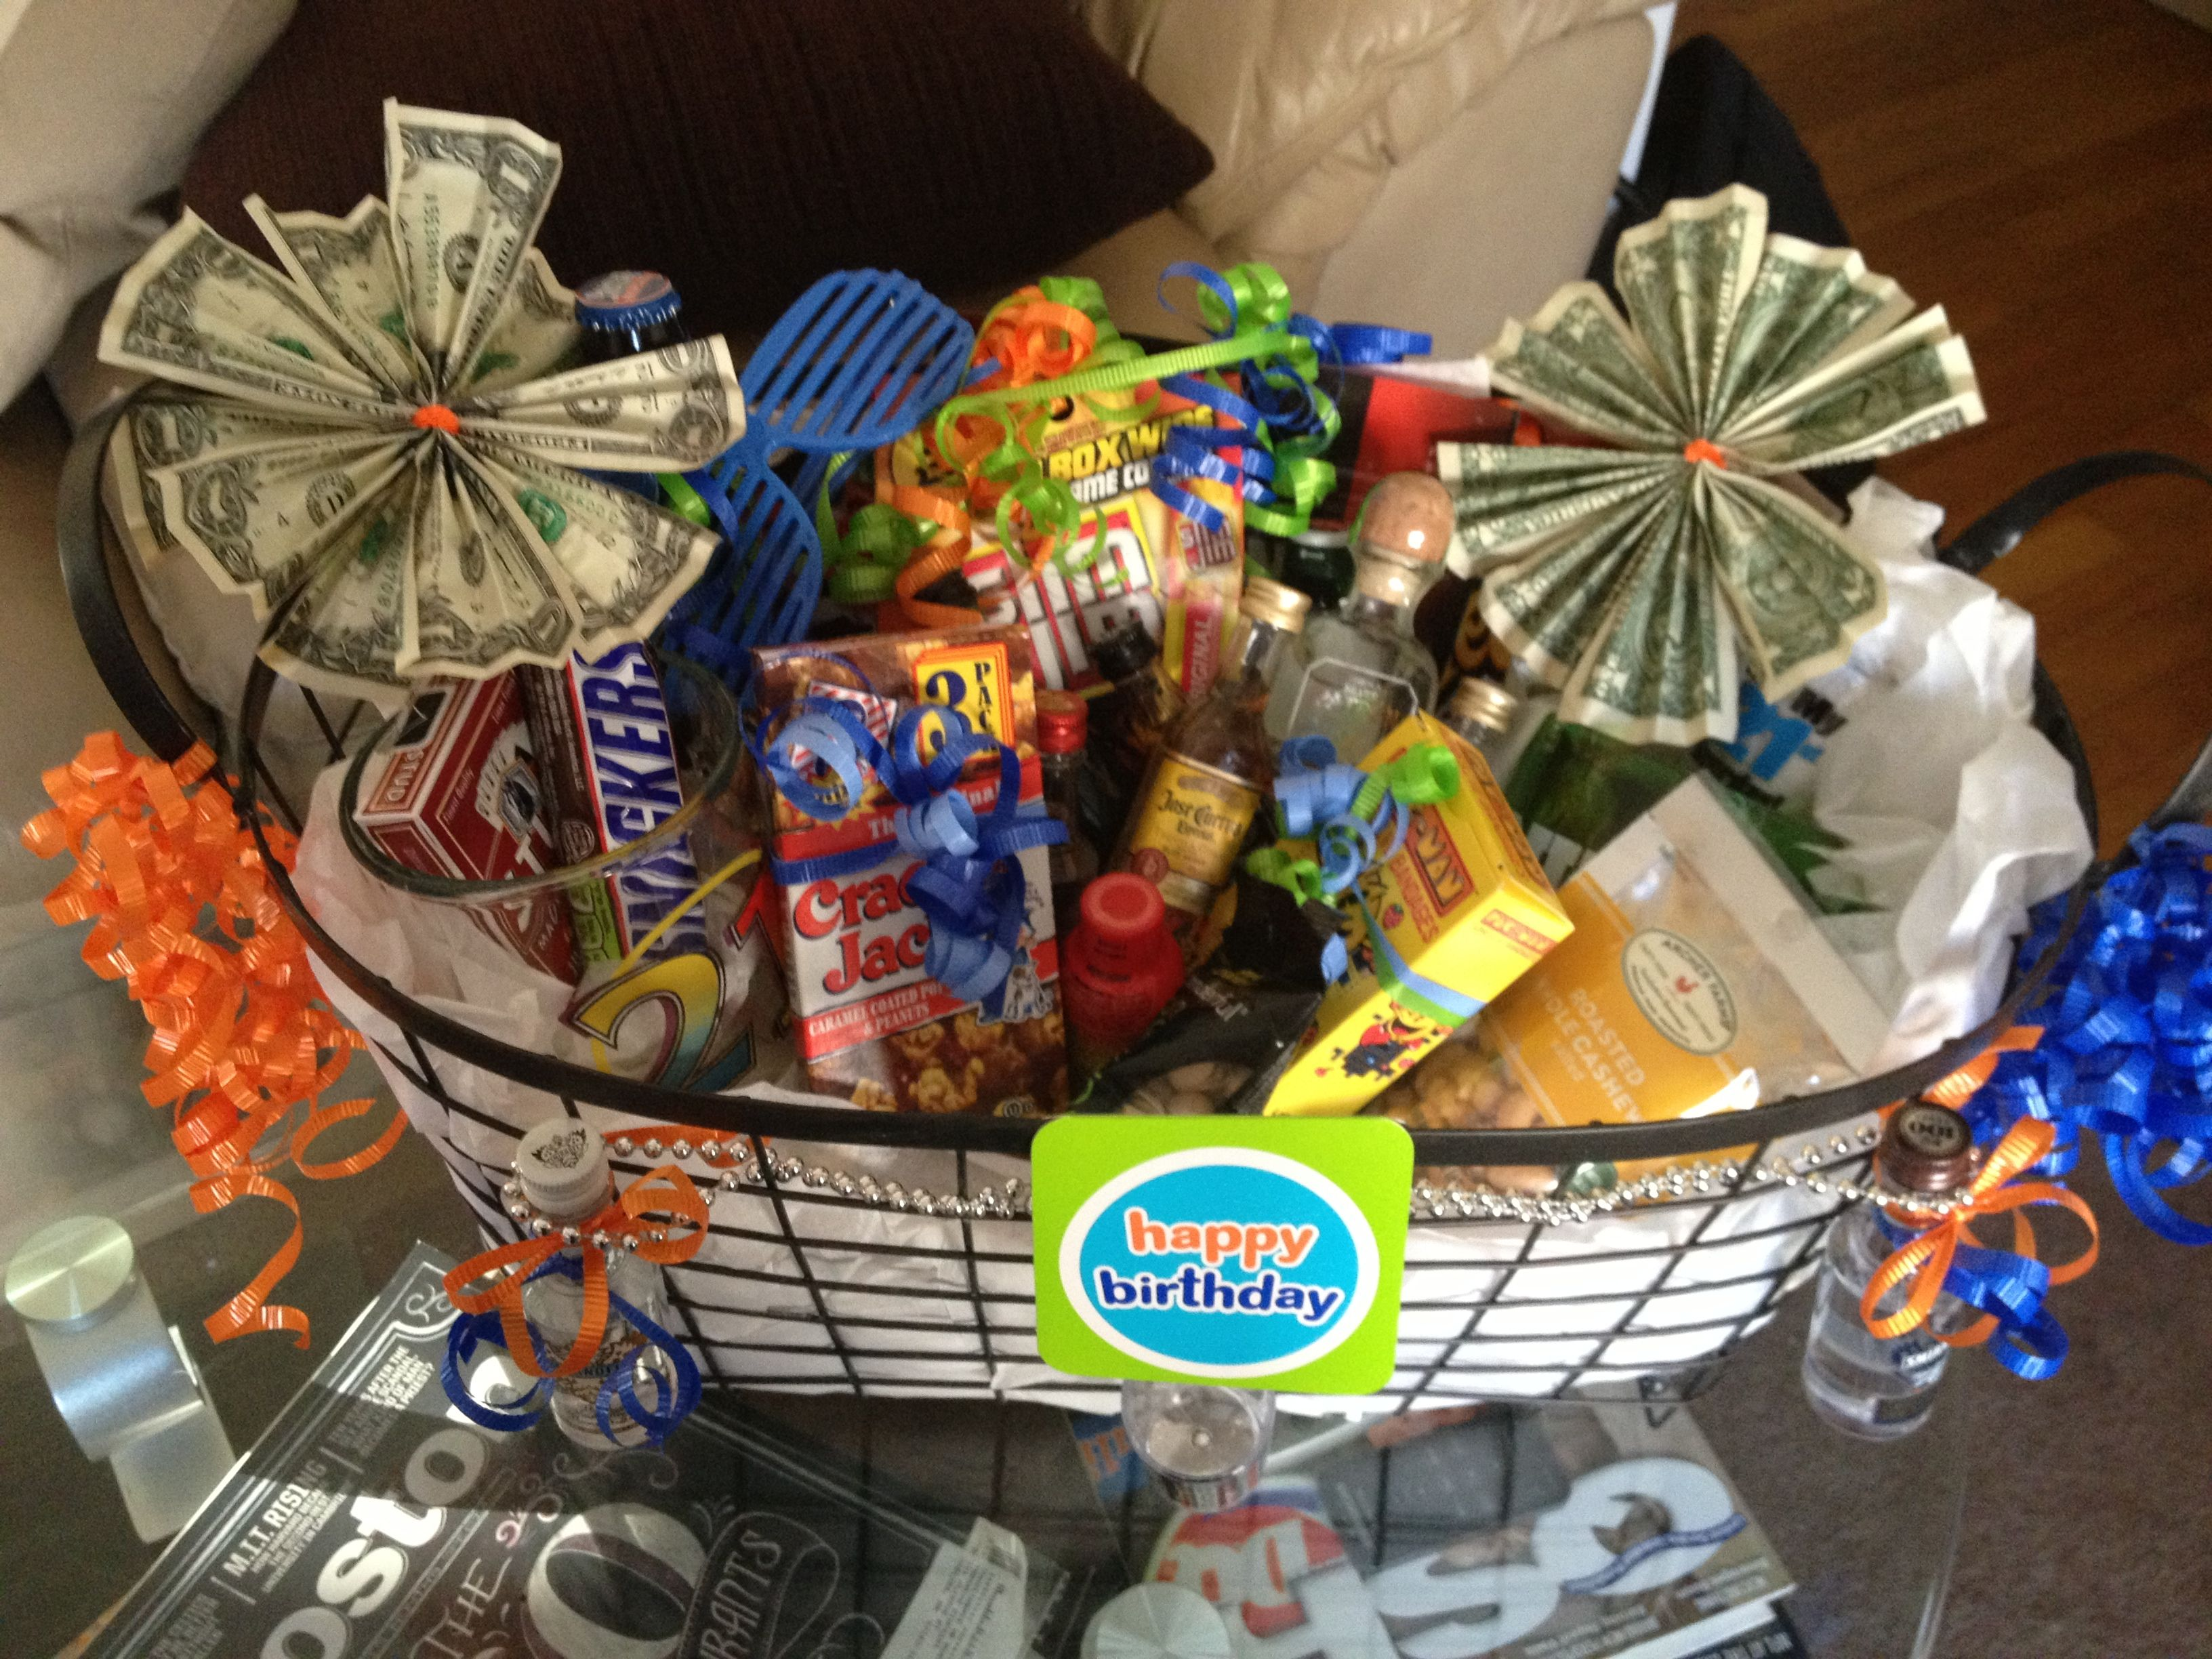 21st birthday basket for my brother huge success